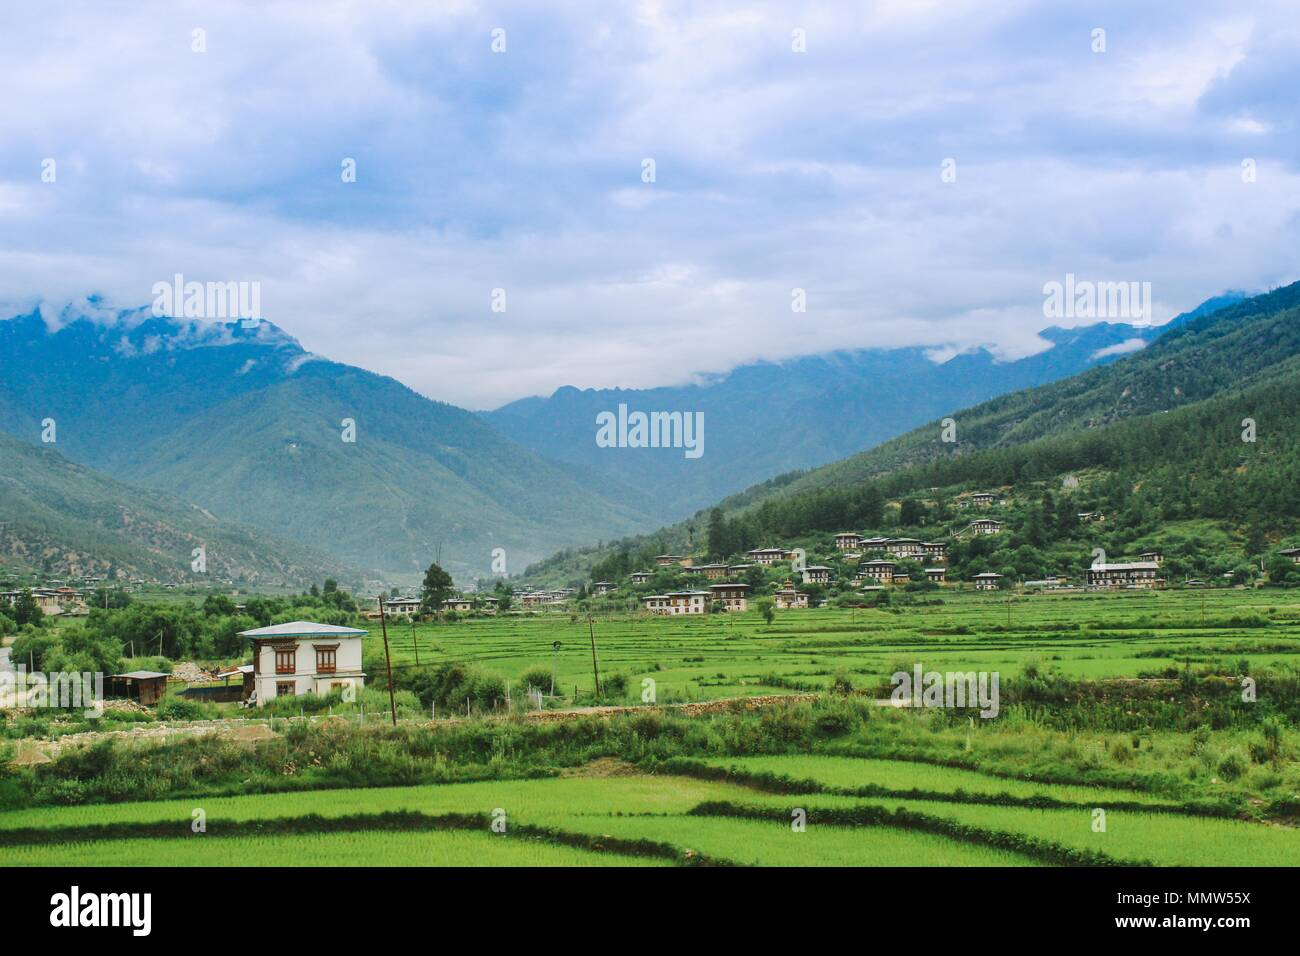 The Landscape of Paro Valley in Bhutan - Stock Image